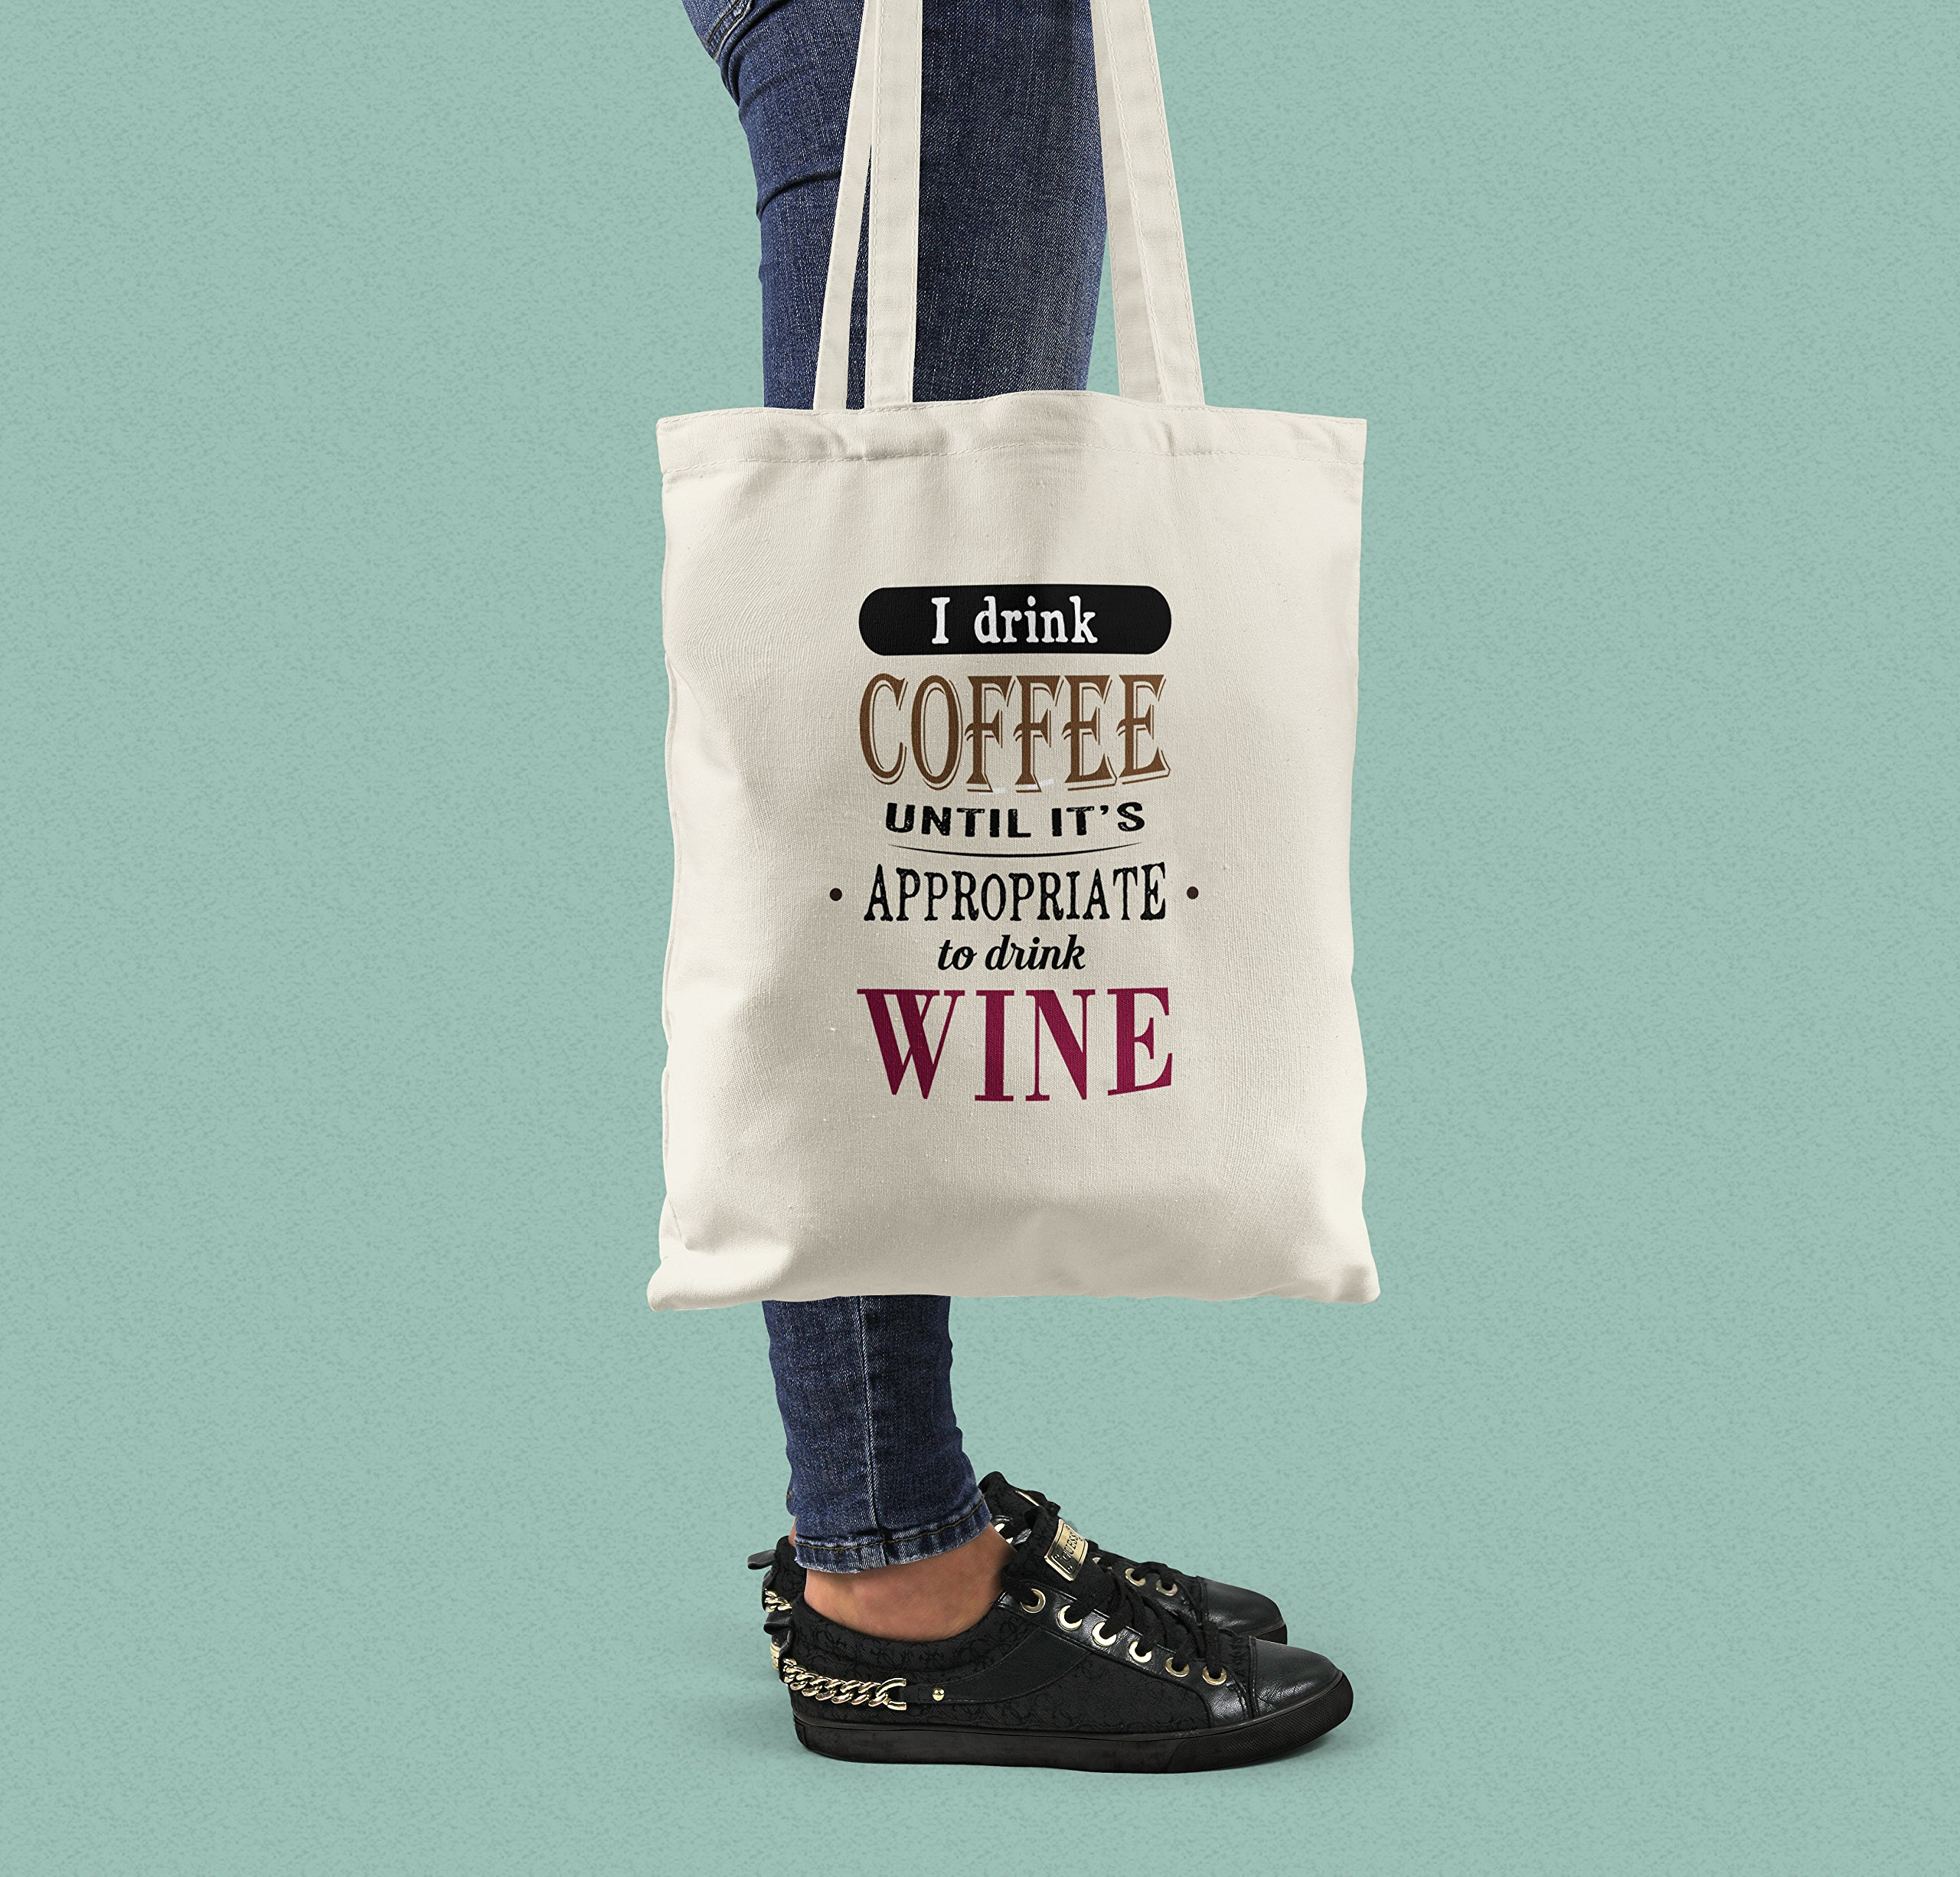 Coffee / Wine Lovers Canvas Shopper Tote Bag - handmade-bags